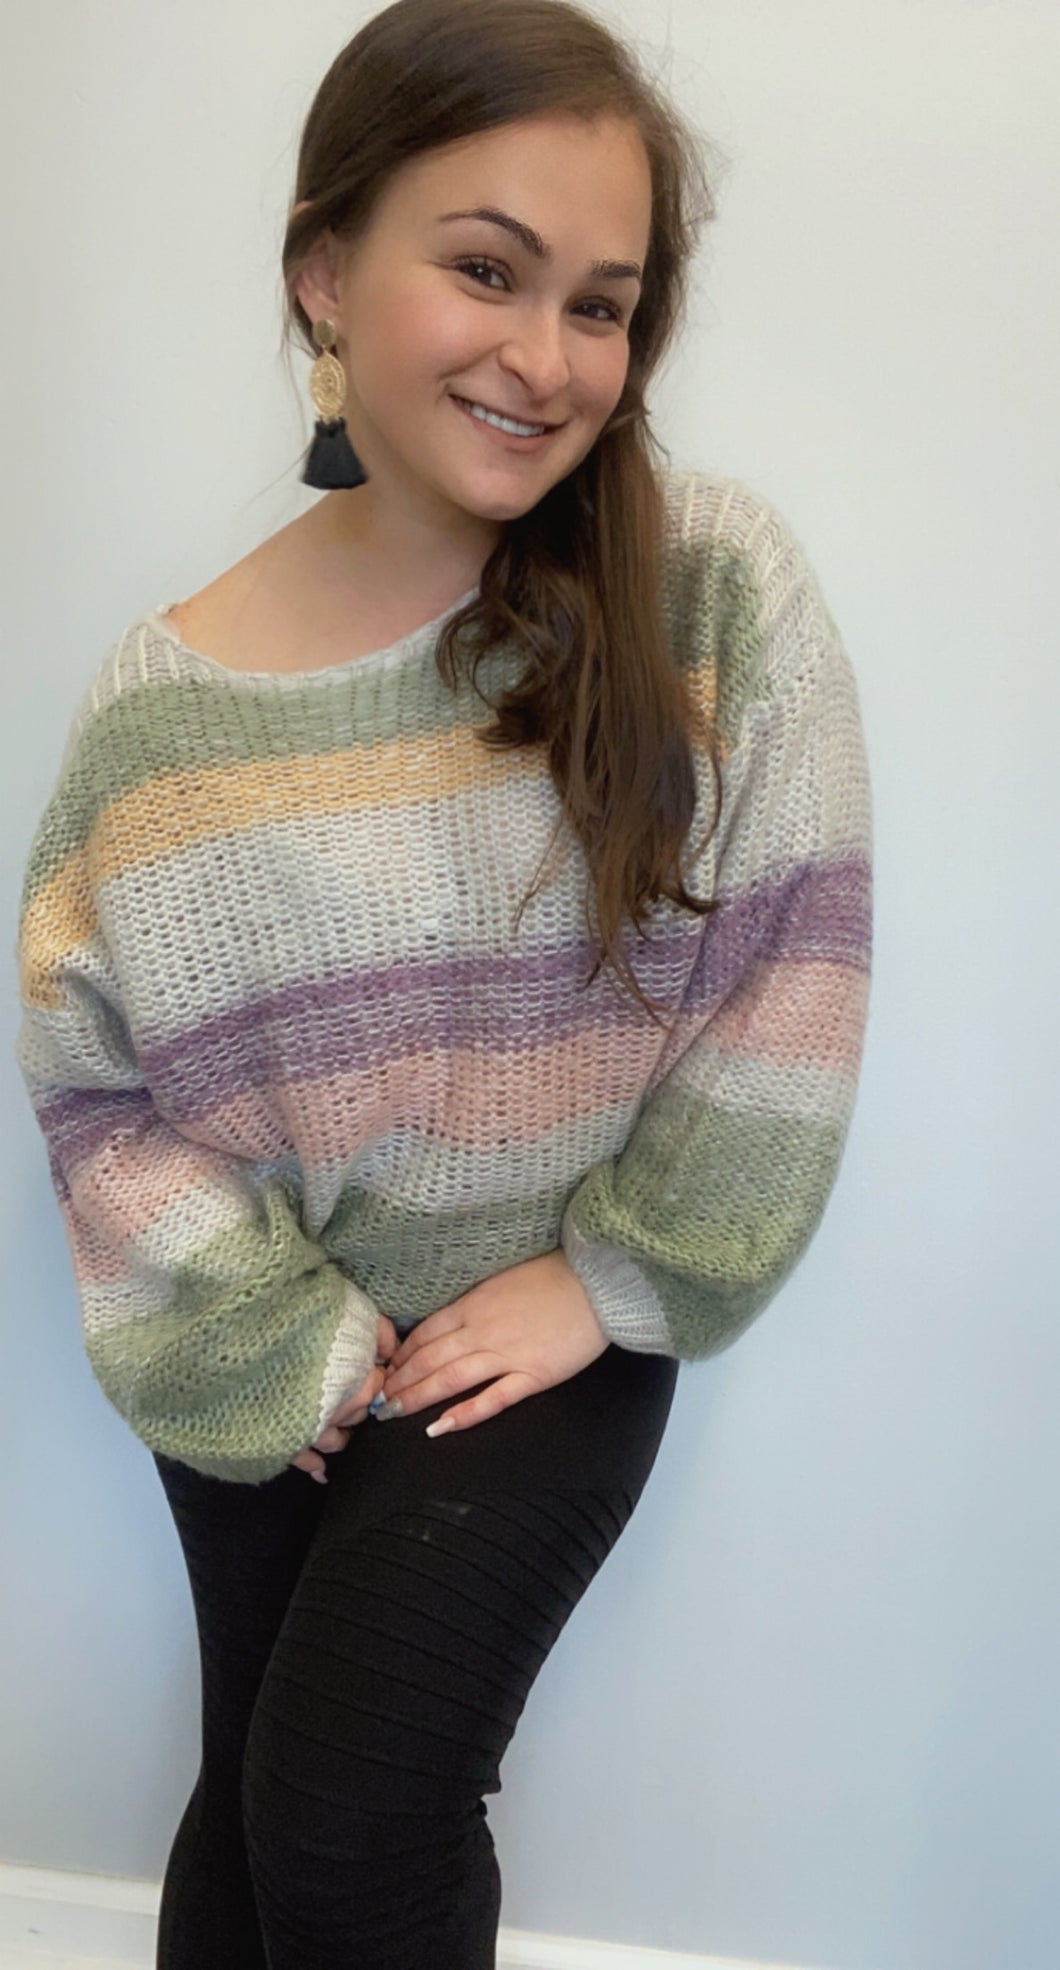 Knit striped pink purple green sweater